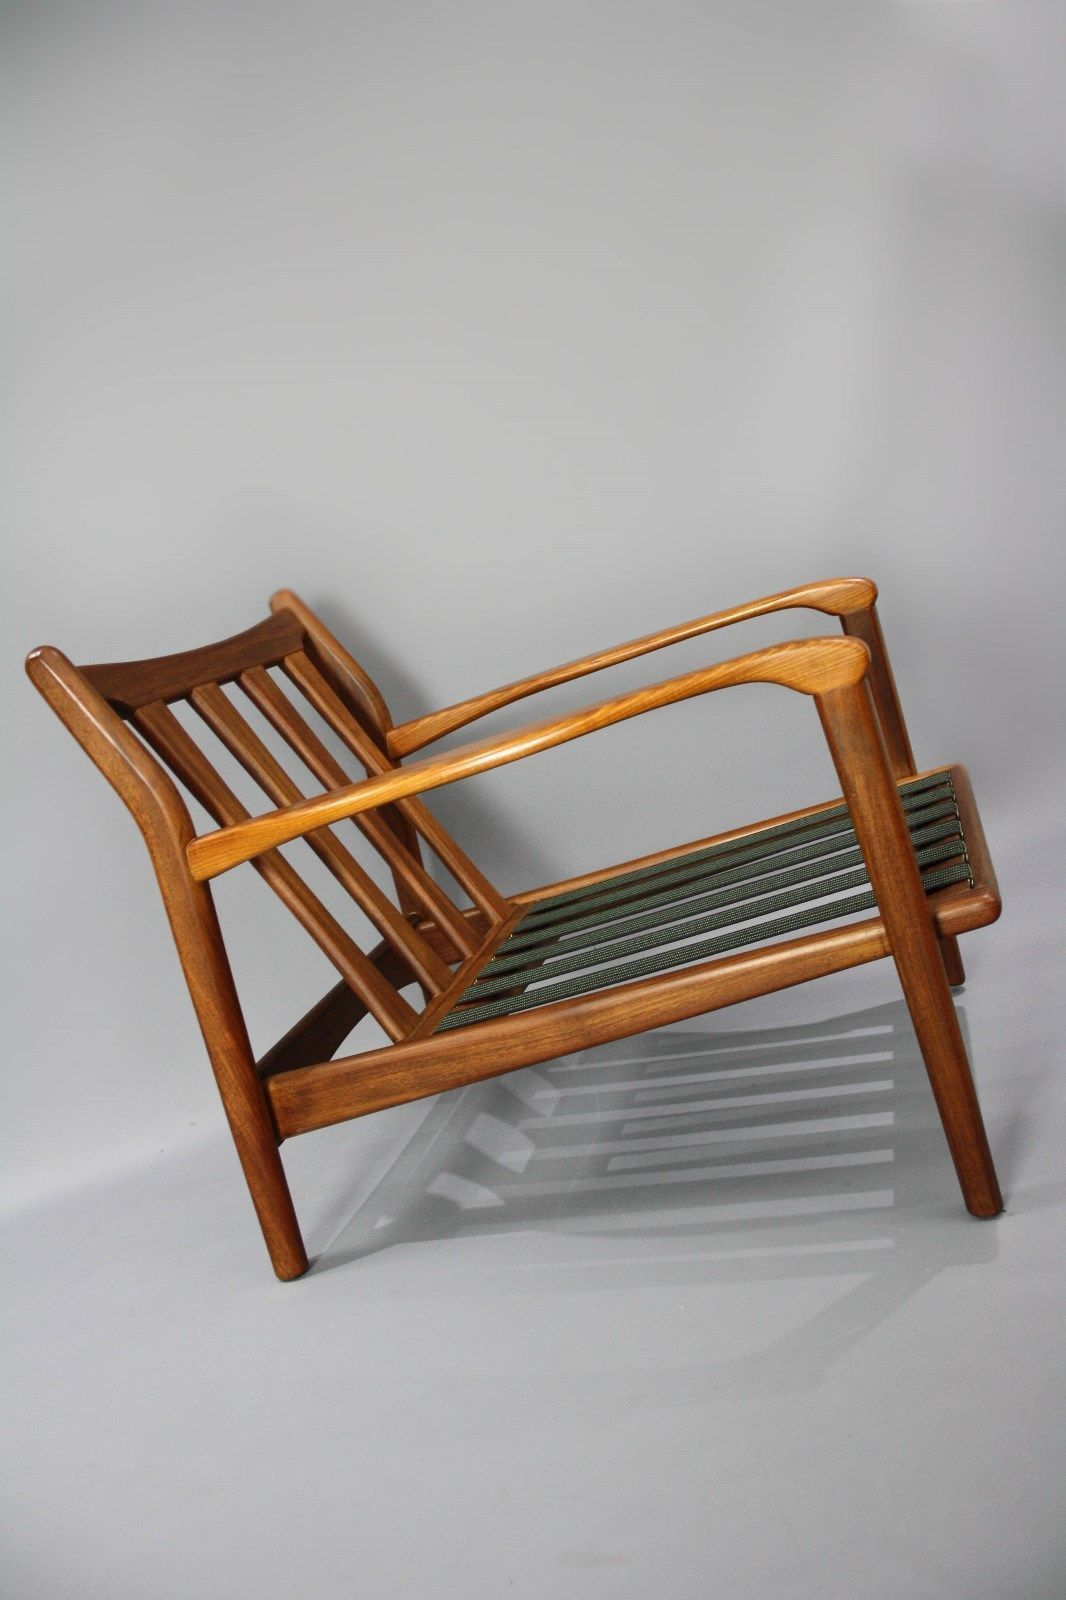 Details about Mid Century Modern Armchair Toothill